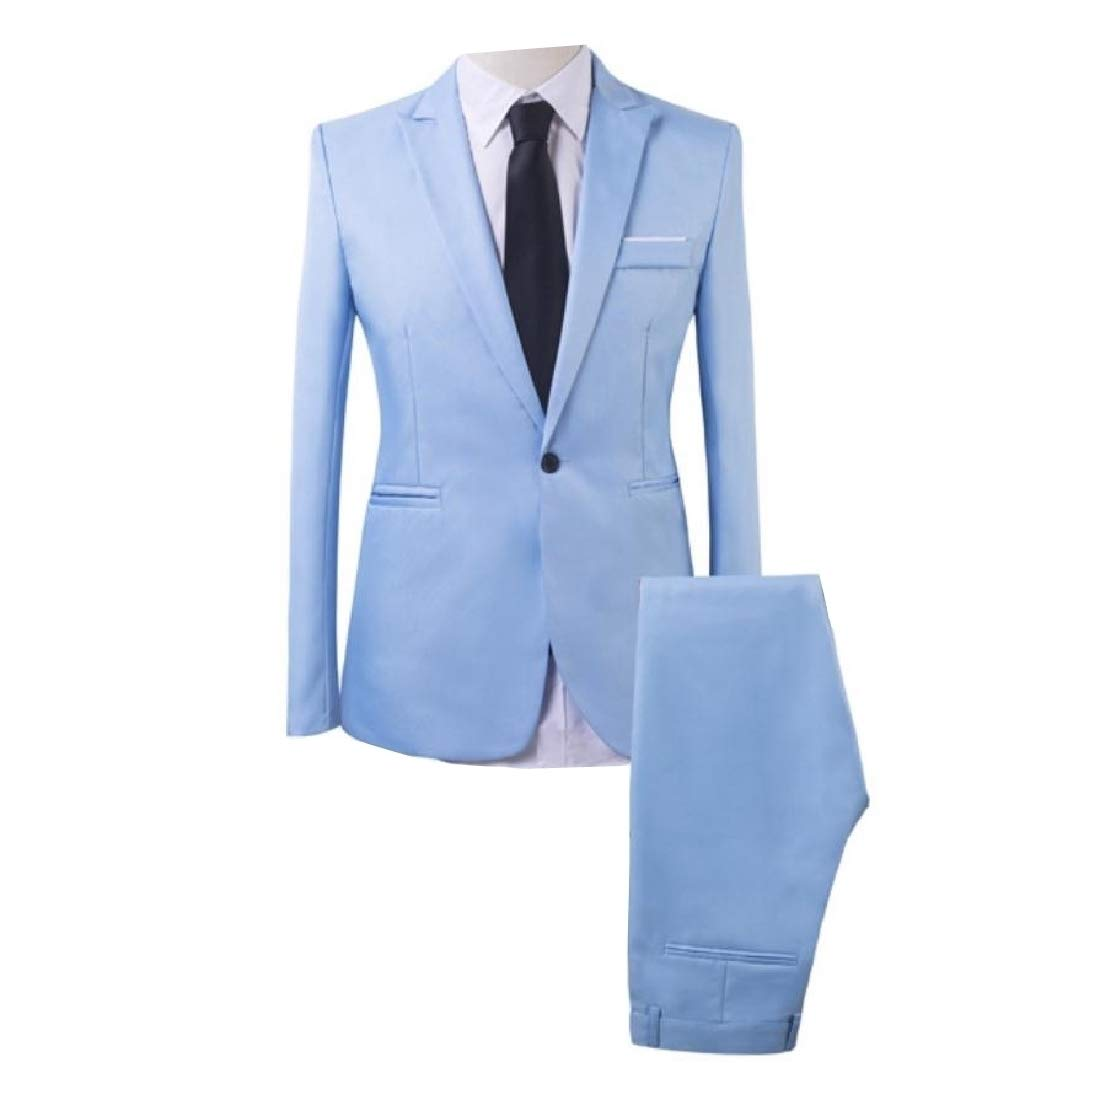 Fnnmk Men Notched Lapel Collar 1 Button Blazer Jacket & Flat Pants Set